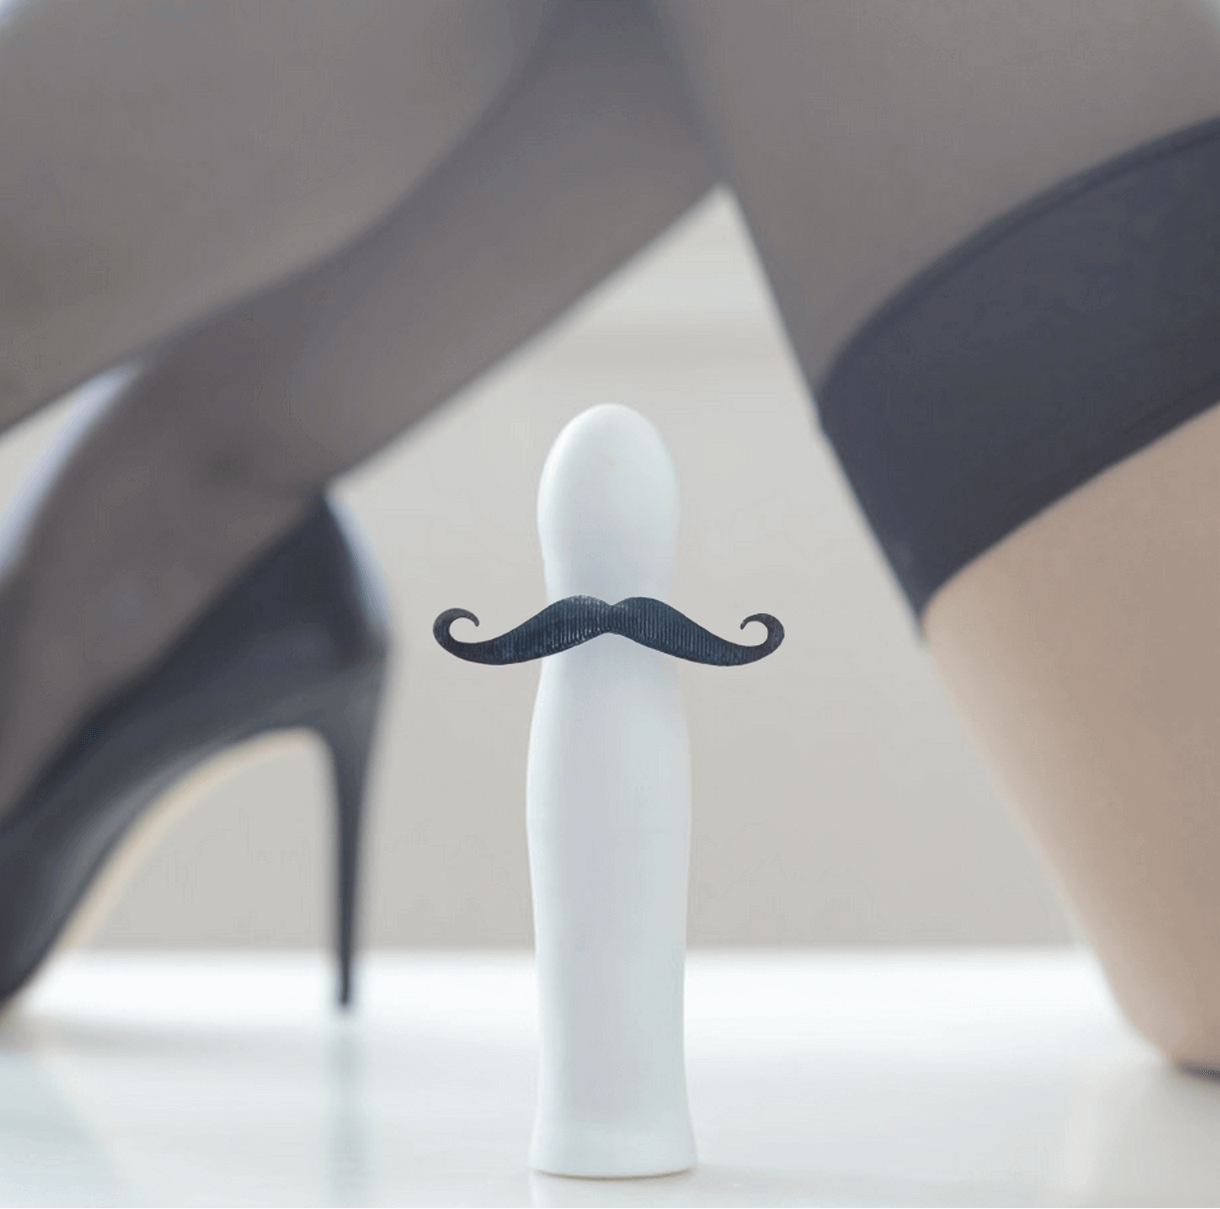 The Hum vibrator relies on artificial intelligence to learn a woman's wants and to create those movements on its own.